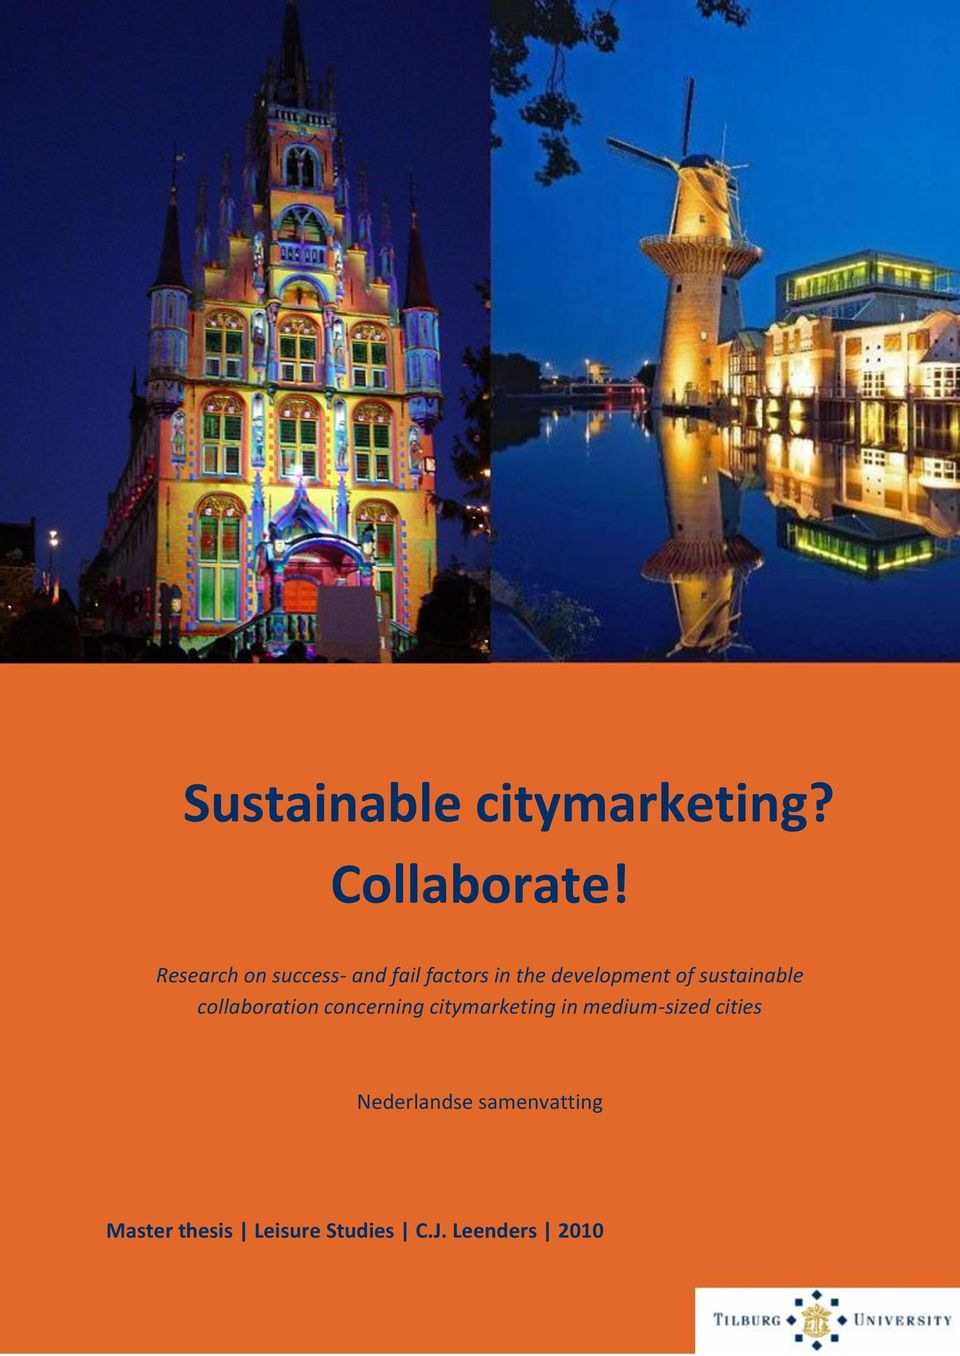 sustainable collaboration concerning citymarketing in